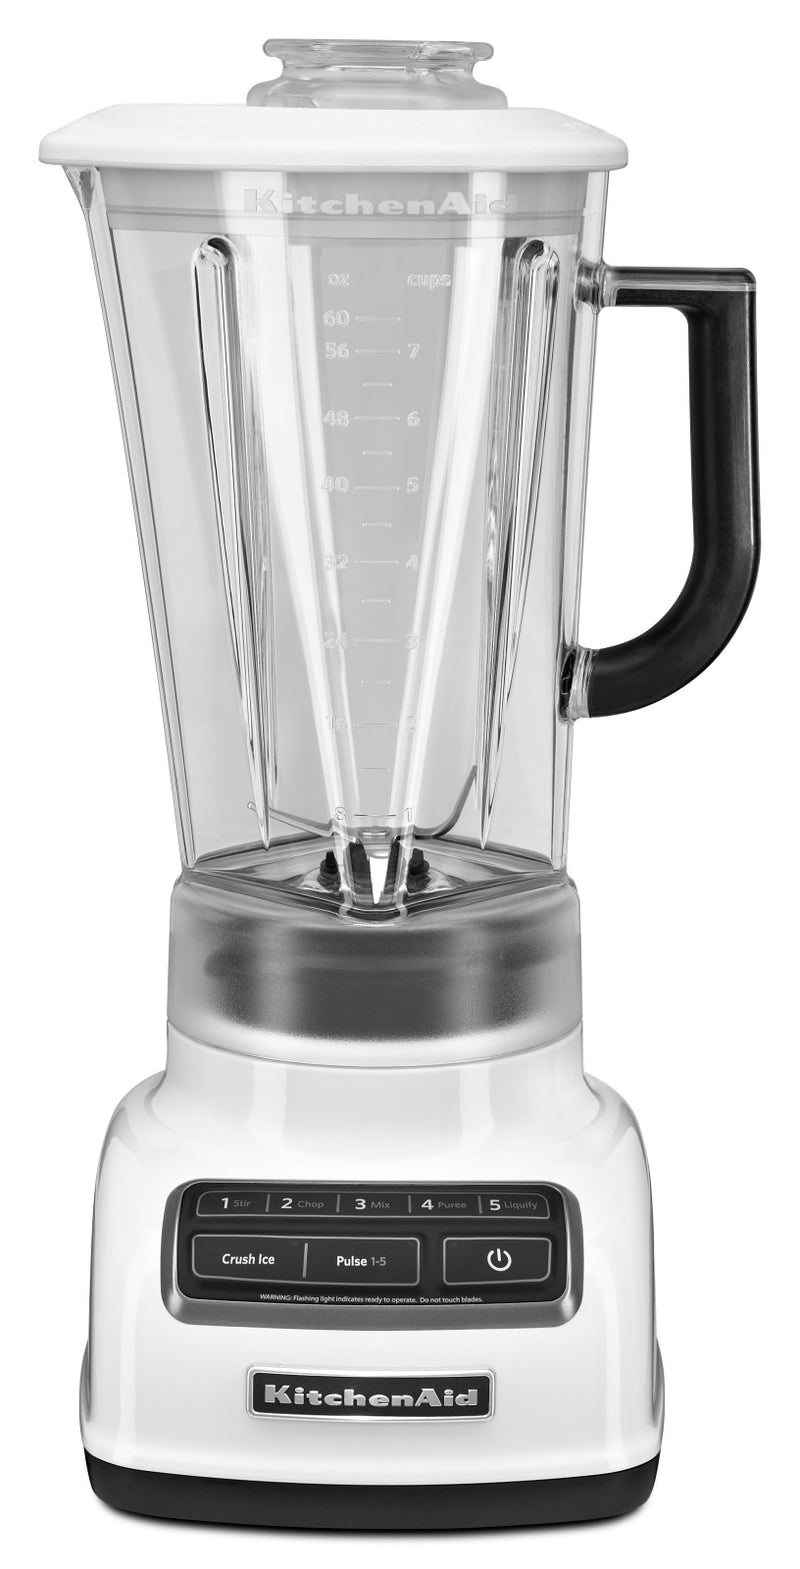 KitchenAid Five-Speed Diamond Blender - KSB1575WH|Mélangeur à base losange à cinq vitesses KitchenAid - KSB1575WH|KSB1575W